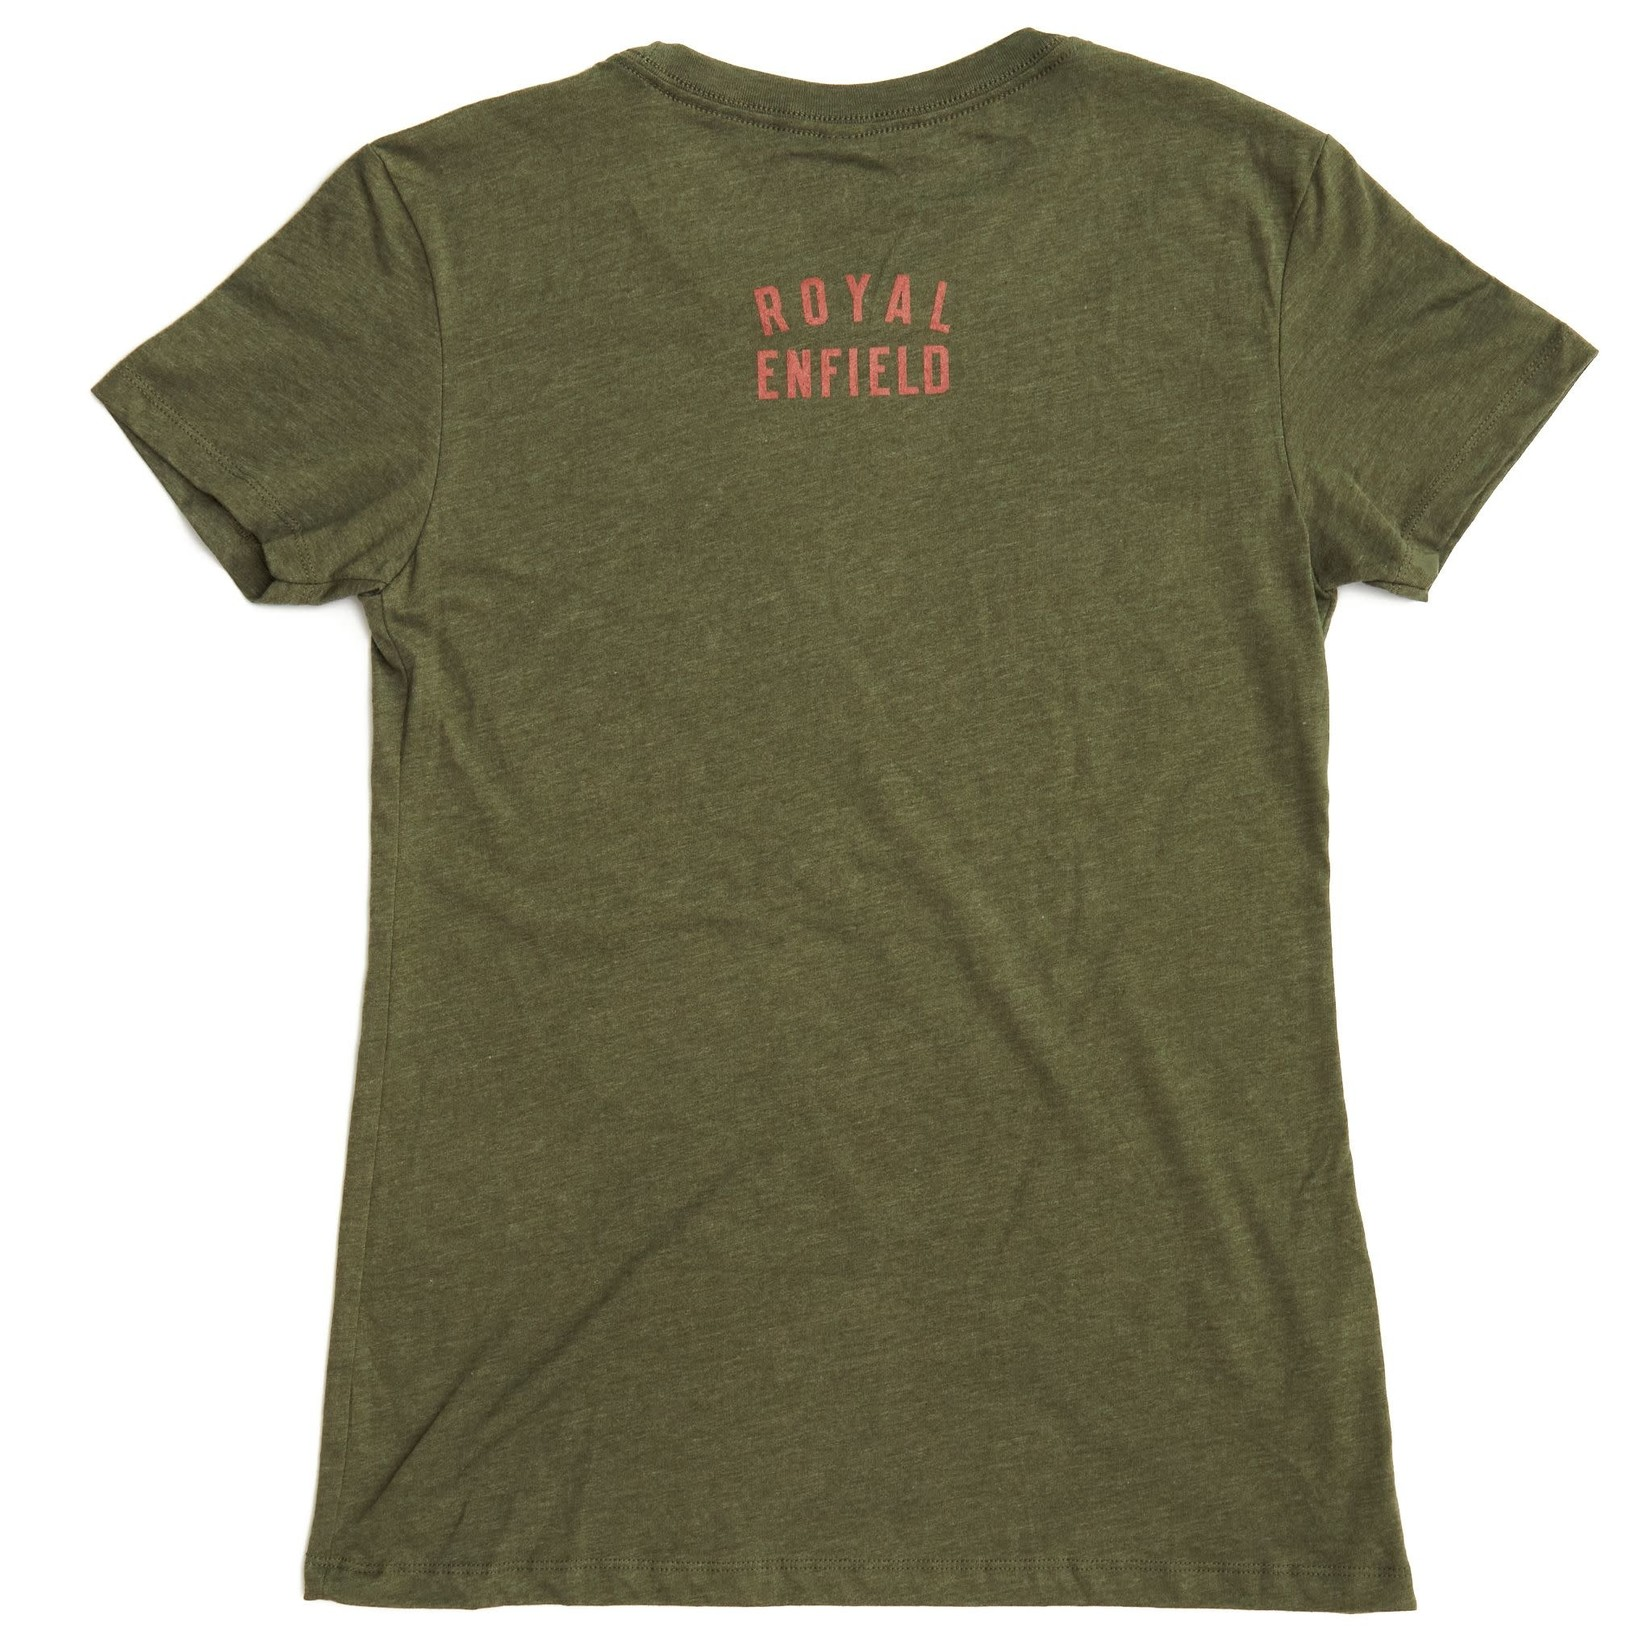 Royal Enfield English Chic Forest - RE shirt